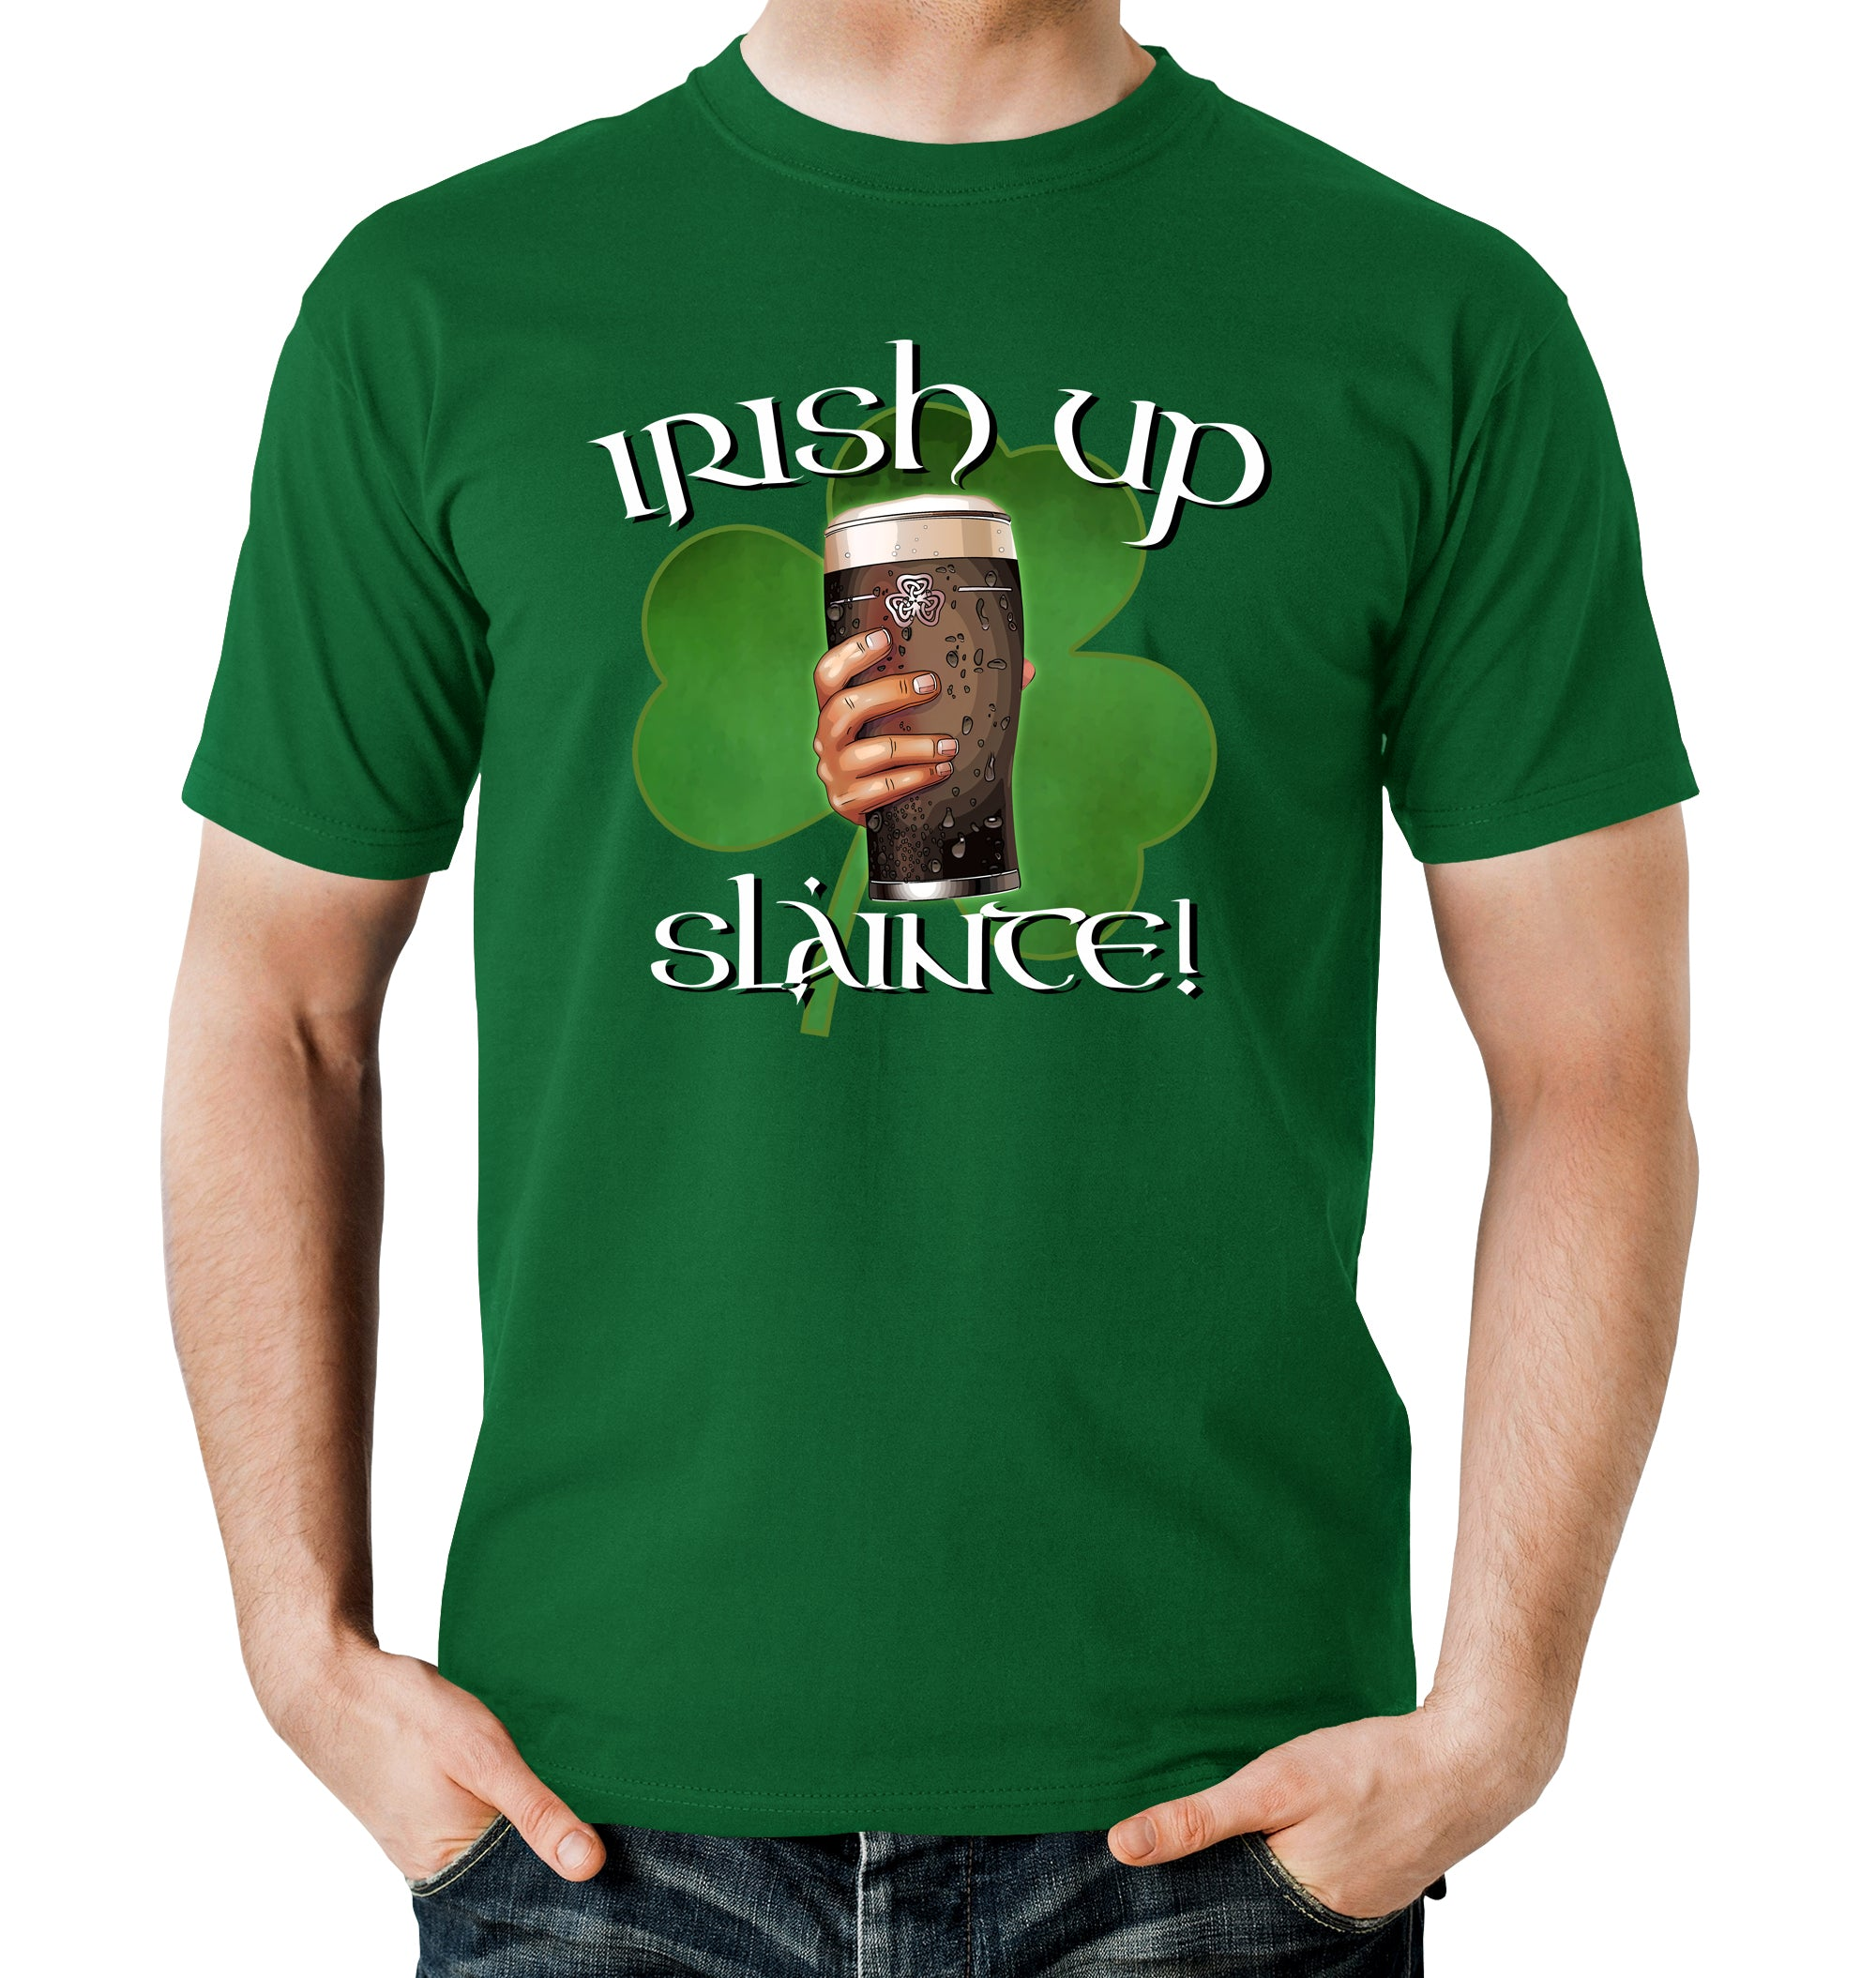 a2db296d Irish Up Slainte St. Patrick's Day T-Shirt - BrewSwag